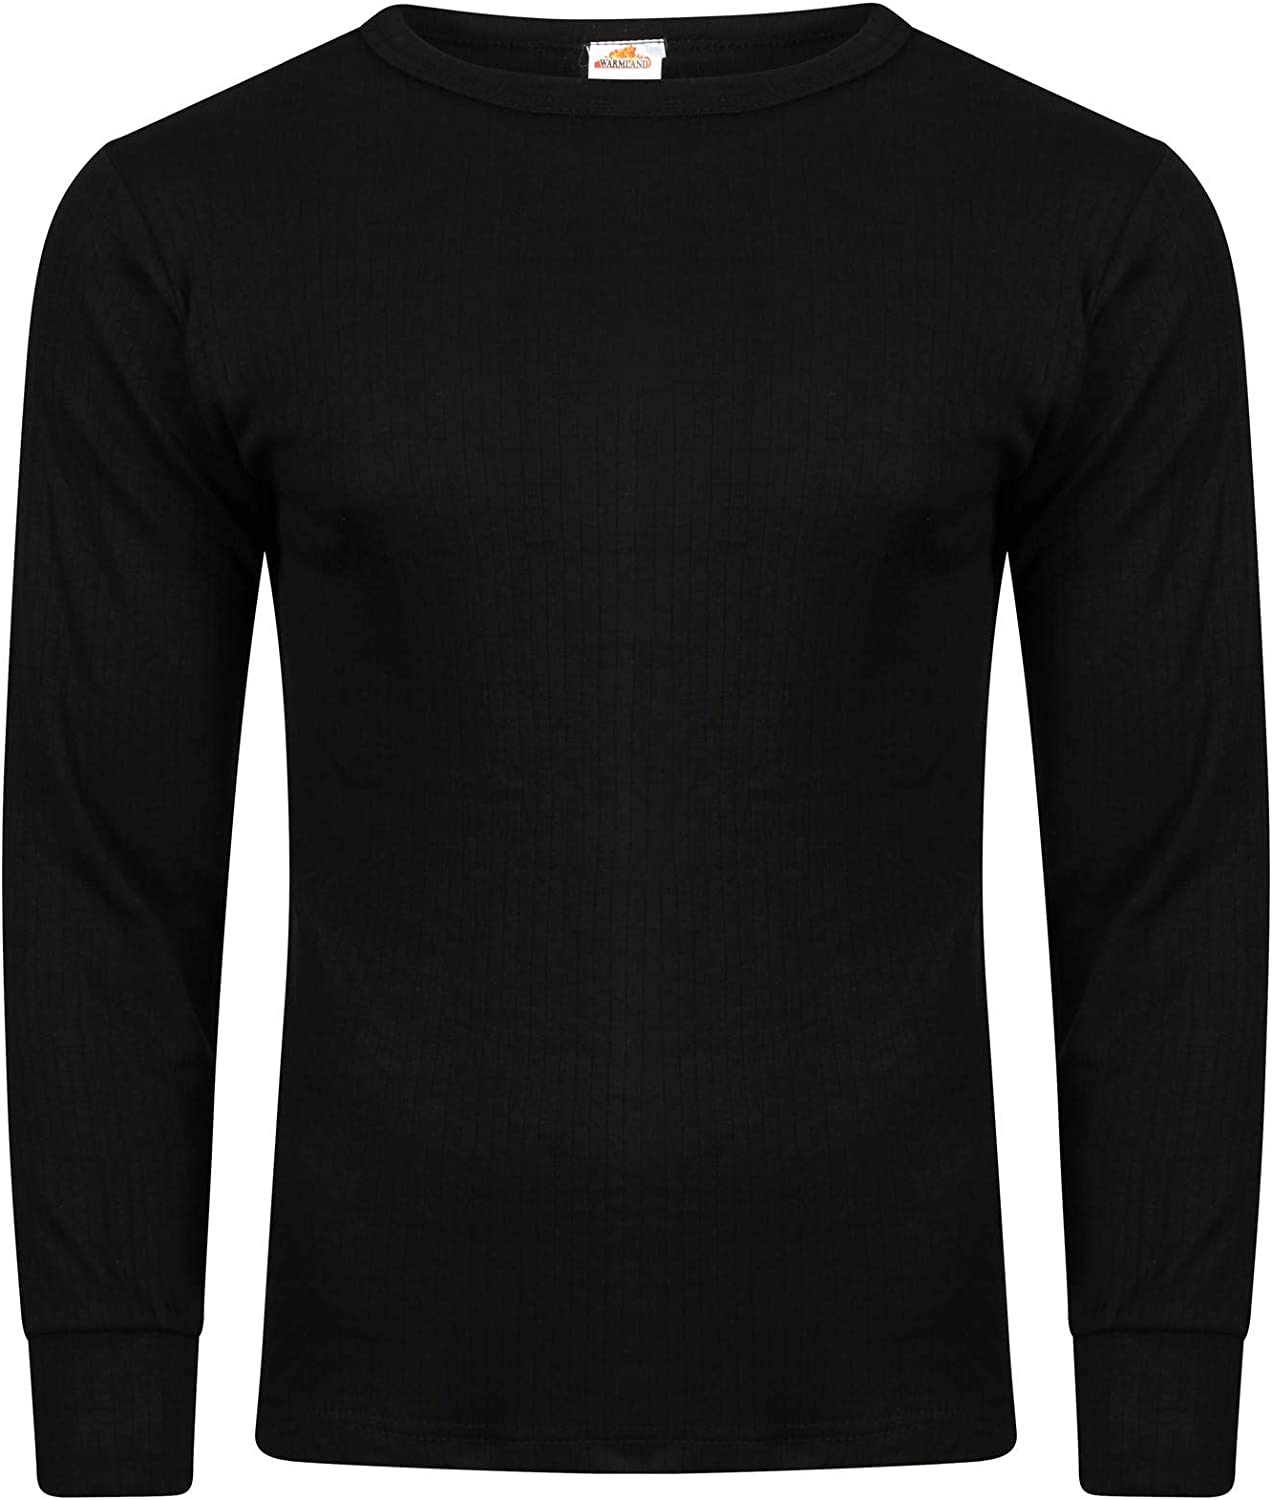 Style Spot Mens Warm Underwear Base Layer Thermal Long Sleeve Top Mens High Tech Fiber Thermals Long Johns Tops /& Trousers